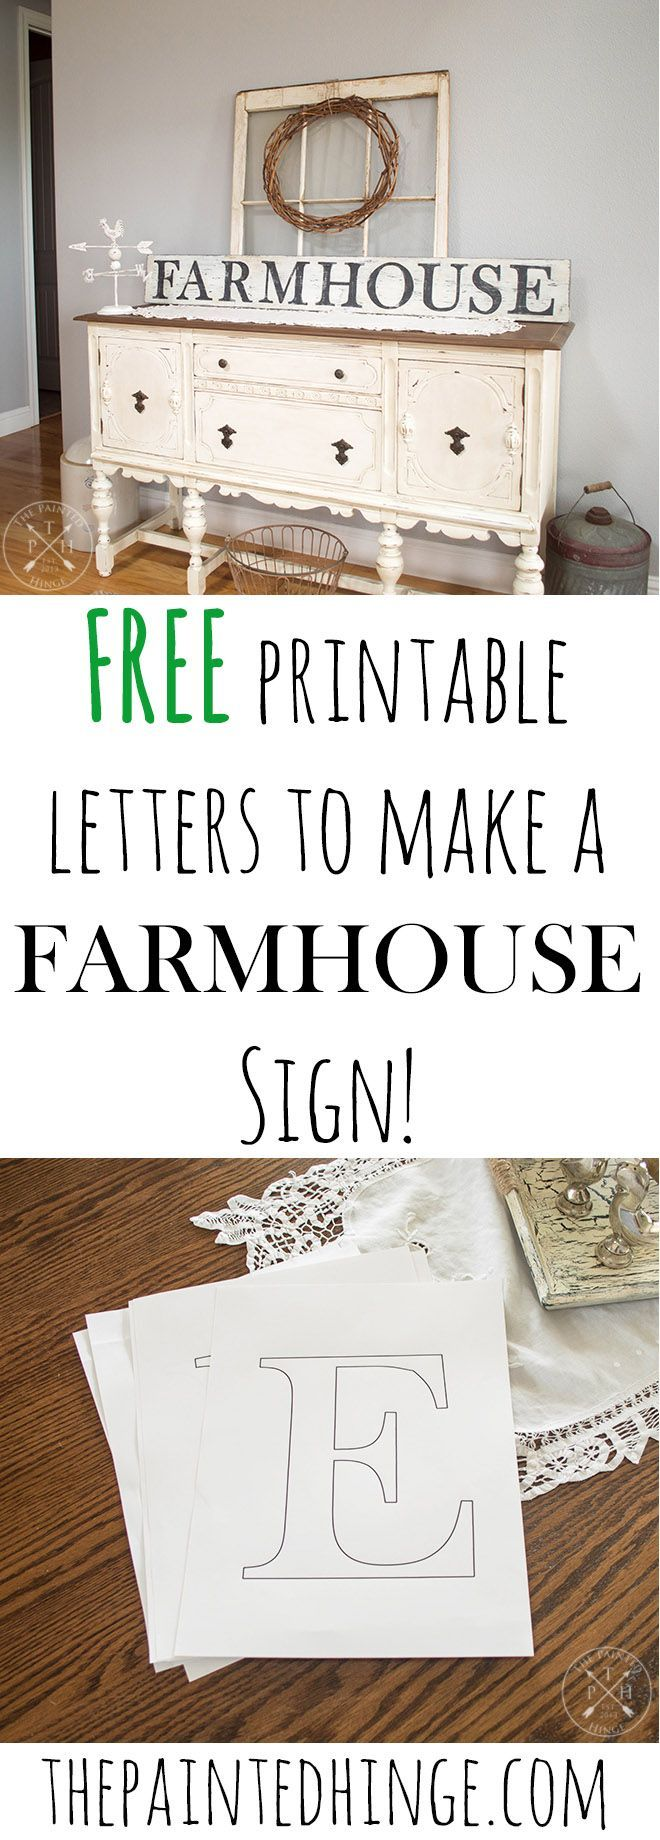 Joanie Stencil Dreams Fancy French English Cottage Bedroom craft Signs U paint